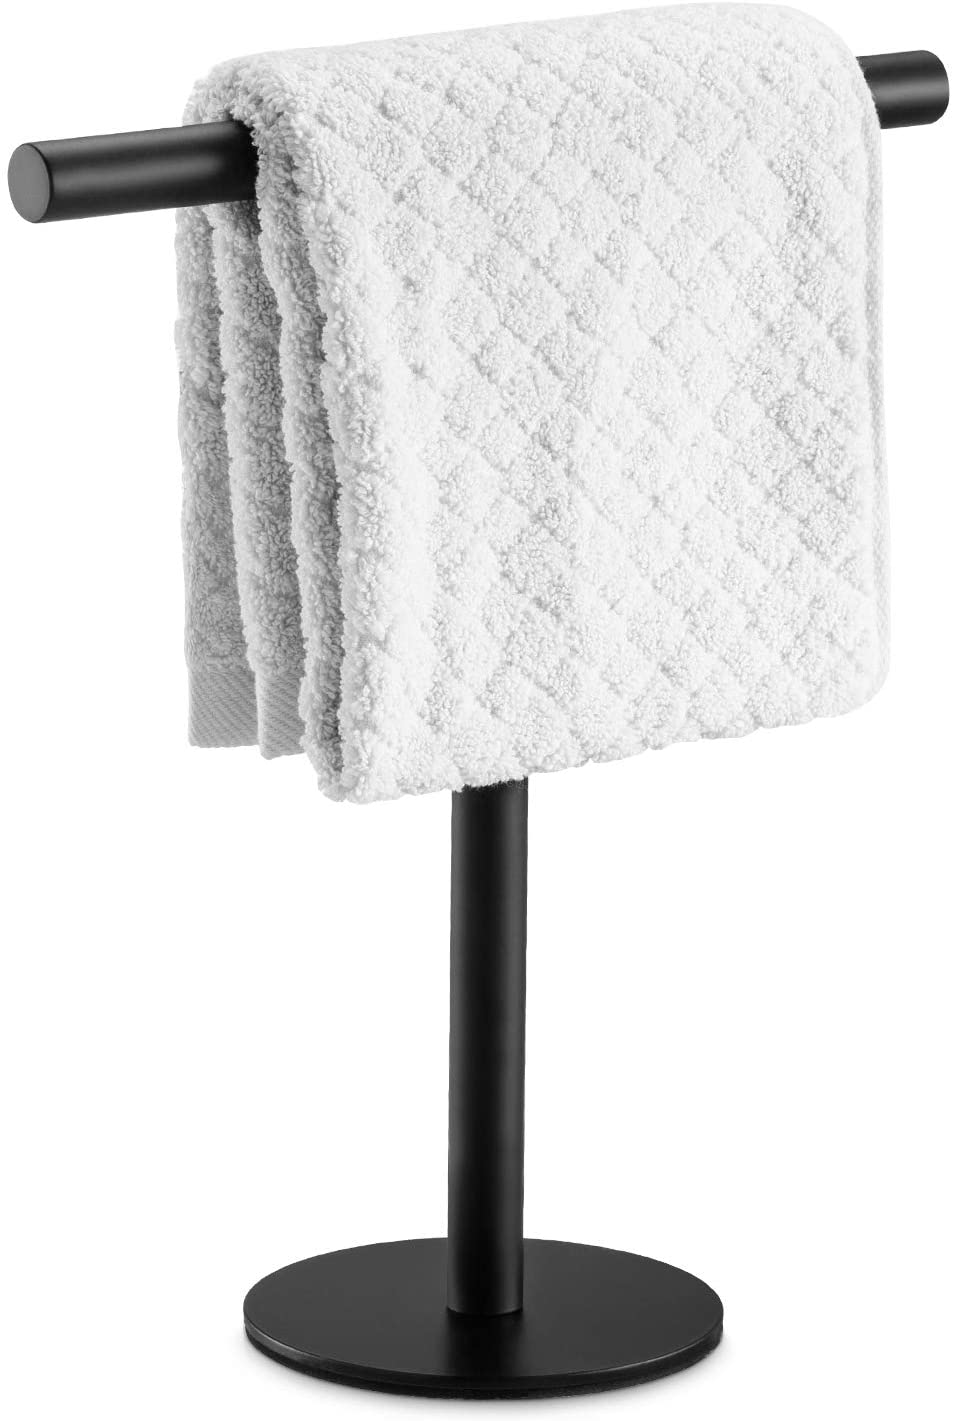 Amazon Com Pynsseu Bath Hand Towel Holder Standing Sus304 Stainless Steel Matte Black T Shape Towel Bar Rack Stand Tower Bar For Bathroom Kitchen Vanity Countertop Home Kitchen